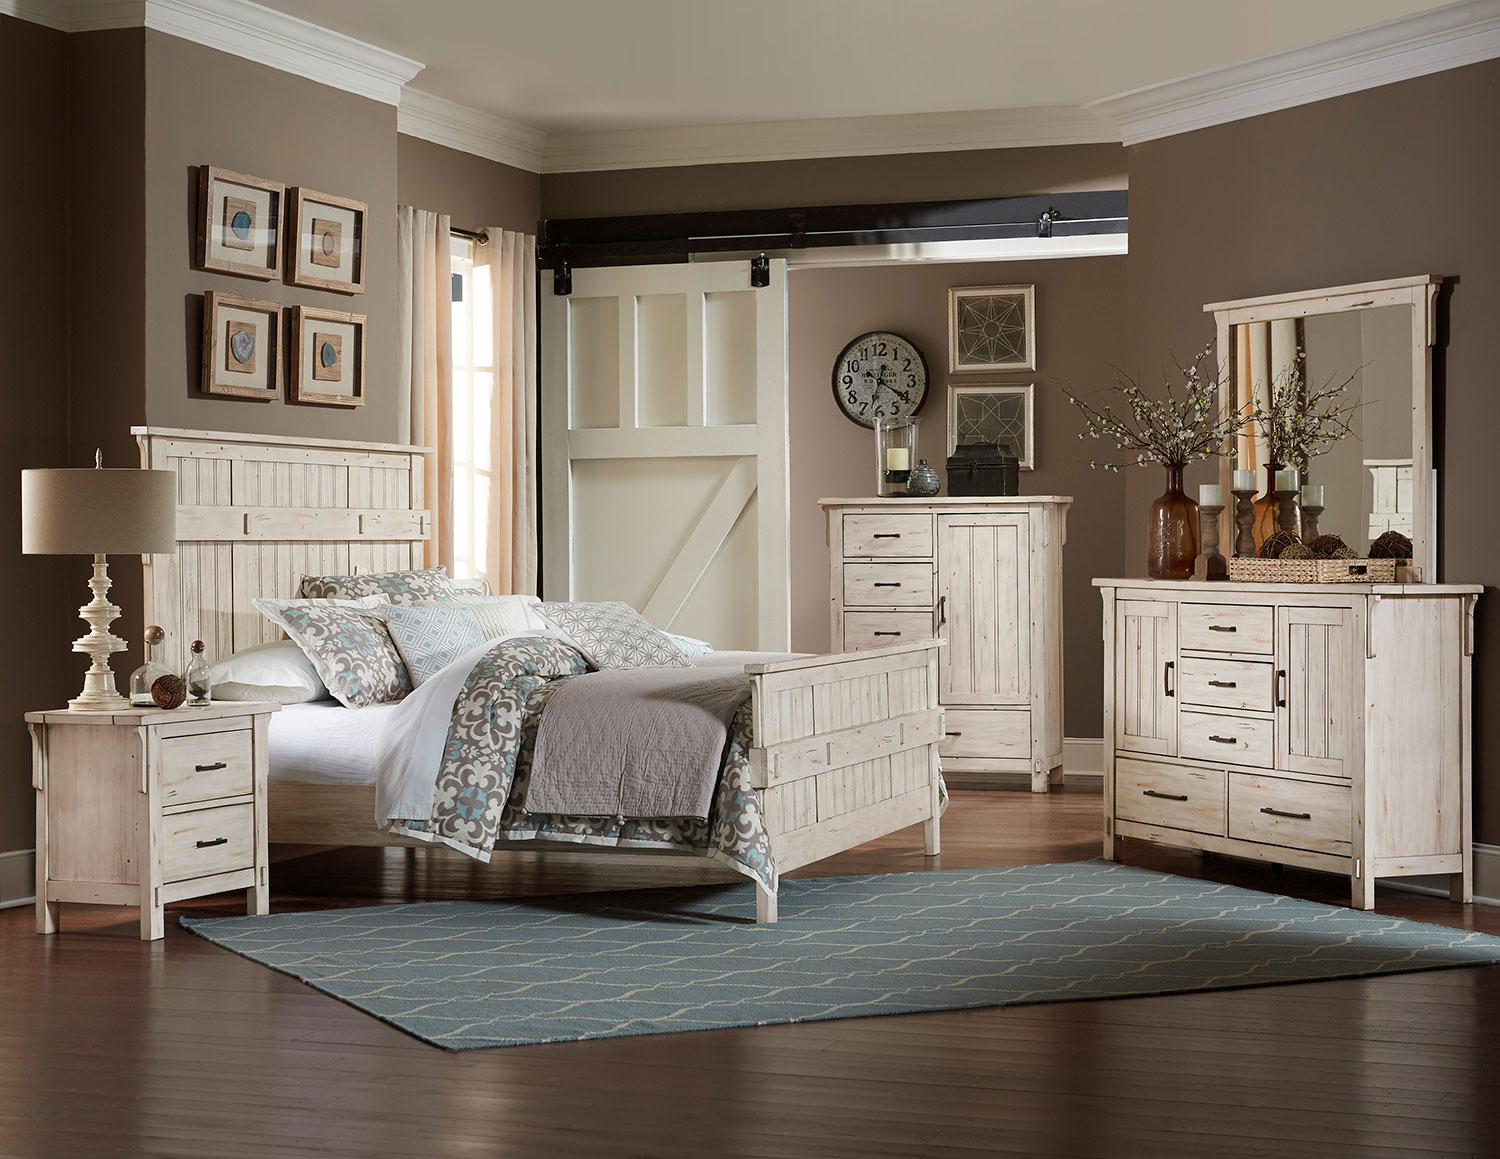 Homelegance Terrace Bedroom Set - Antique White